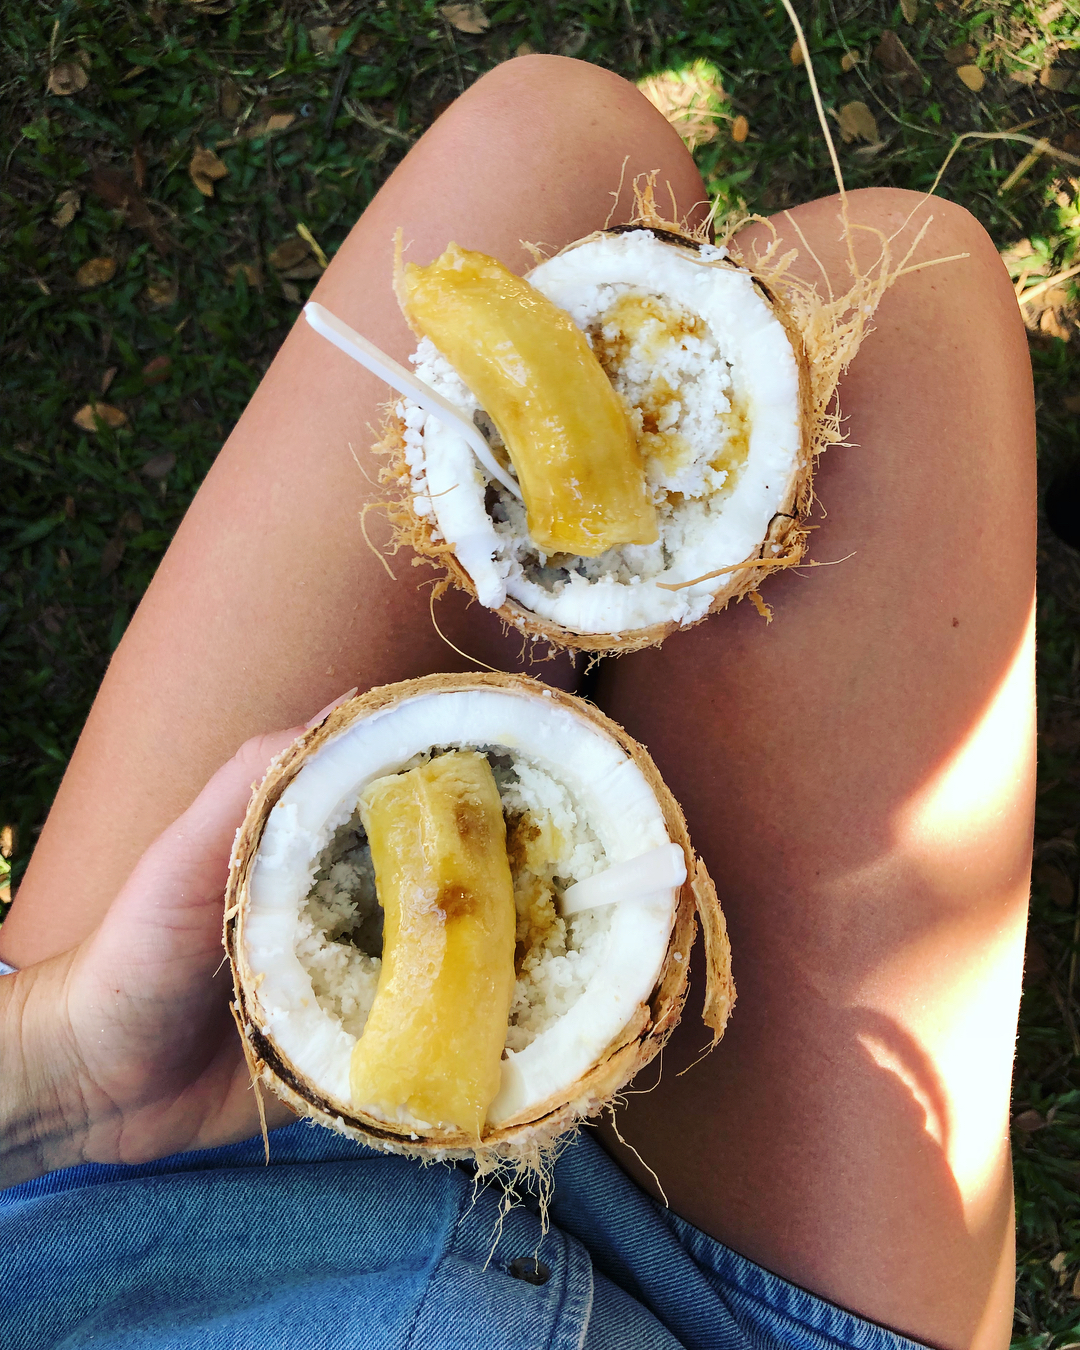 Shredded coconut bowls at the Port Douglas Sunday Markets